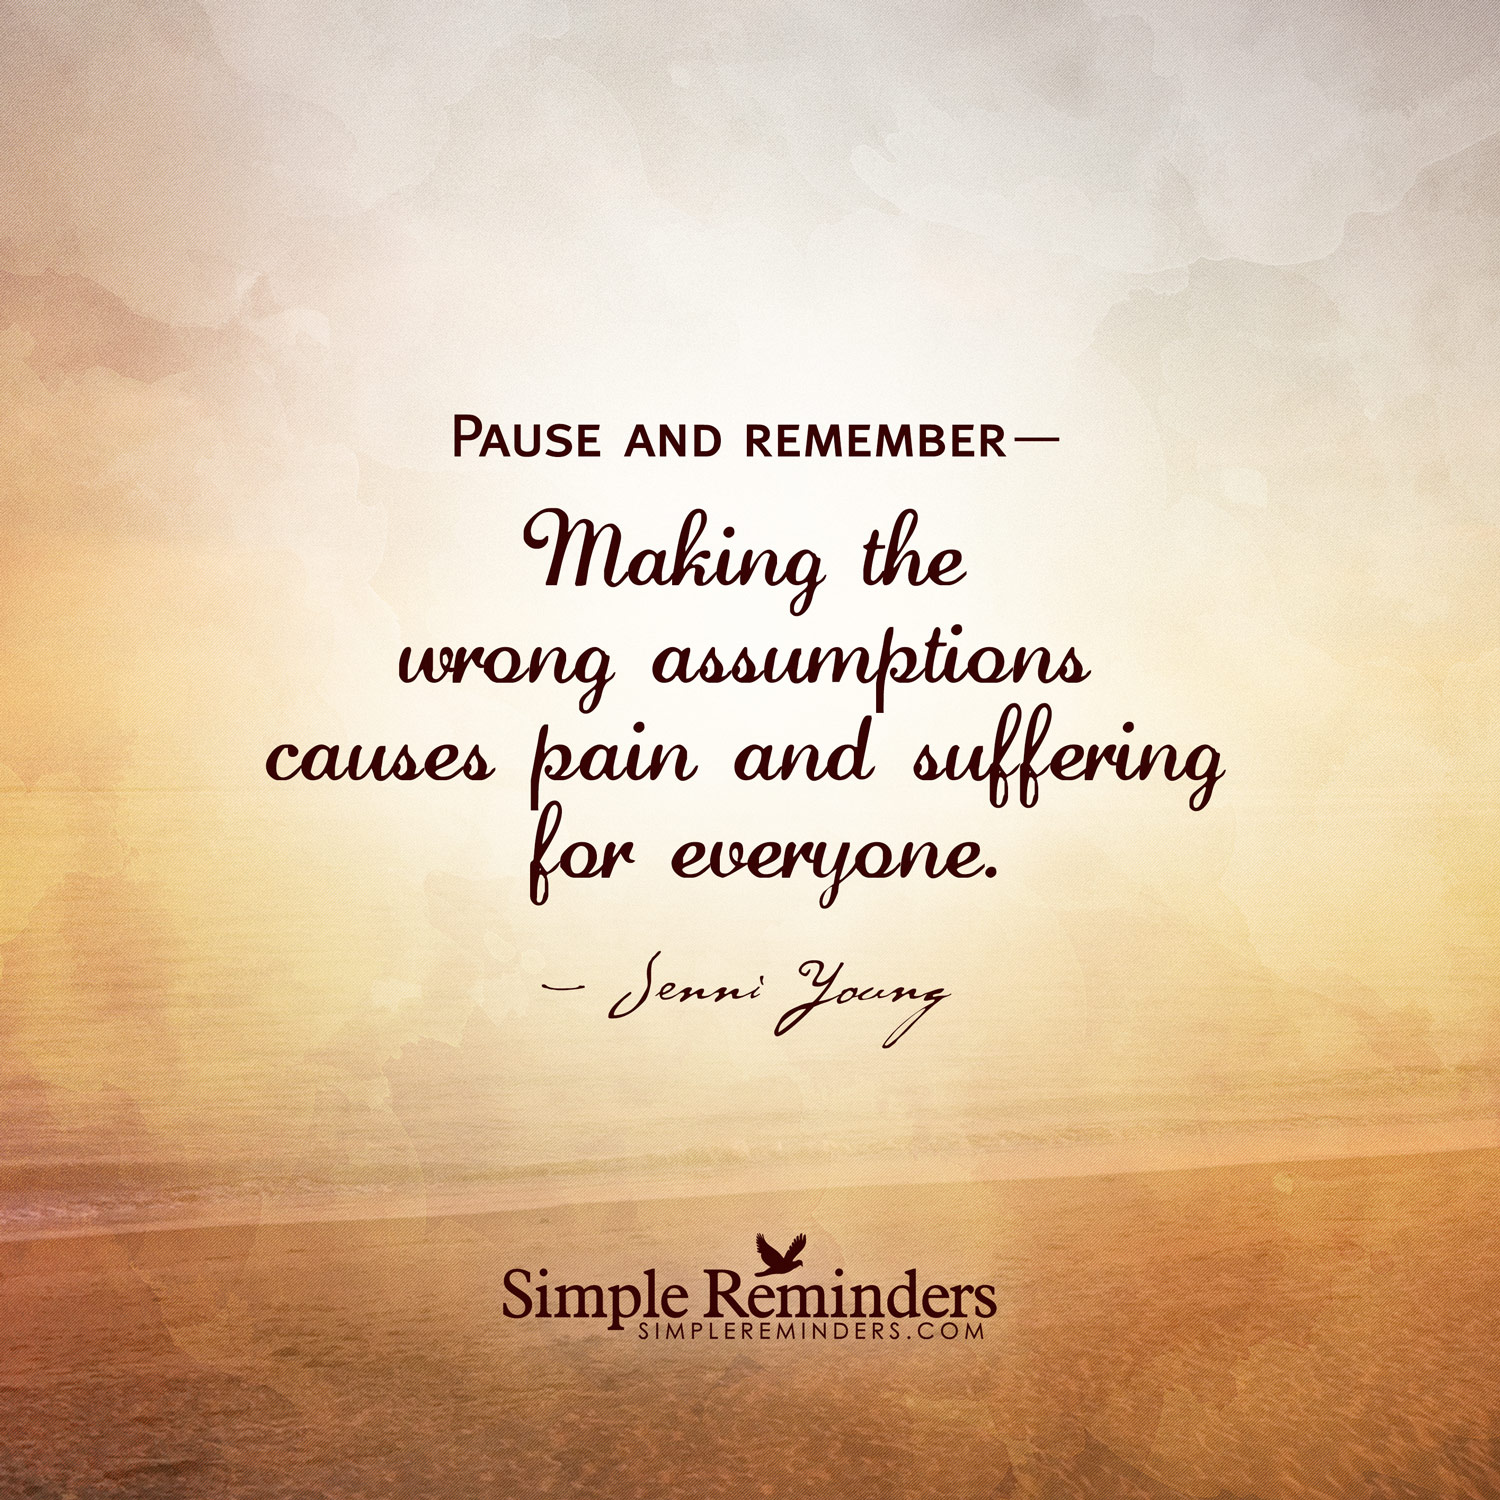 Pause and remember Making the wrong assumptions causes pain and suffering for everyone. Jenni Young